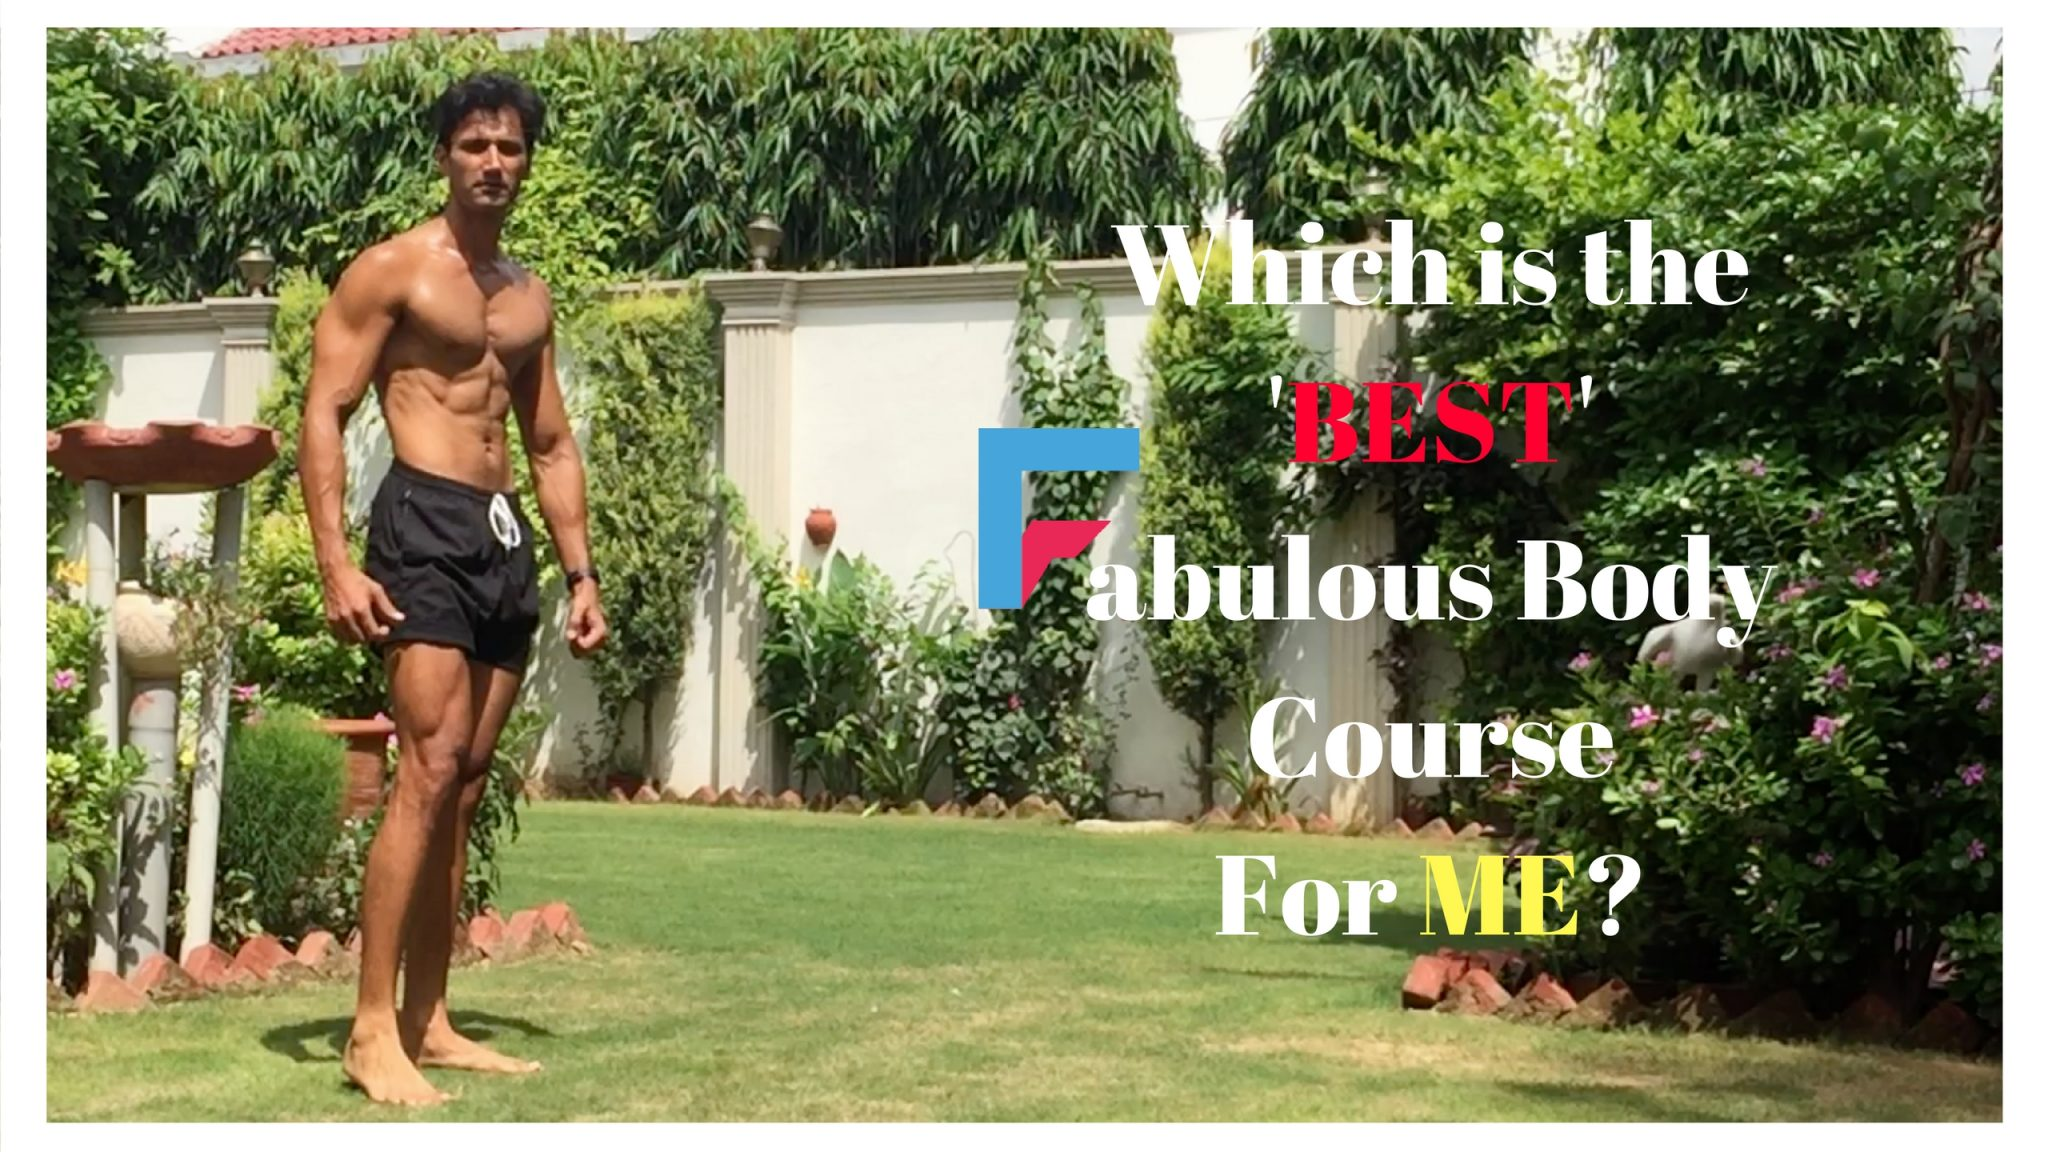 Which is the 'BEST' Fabulous Body Course for me?